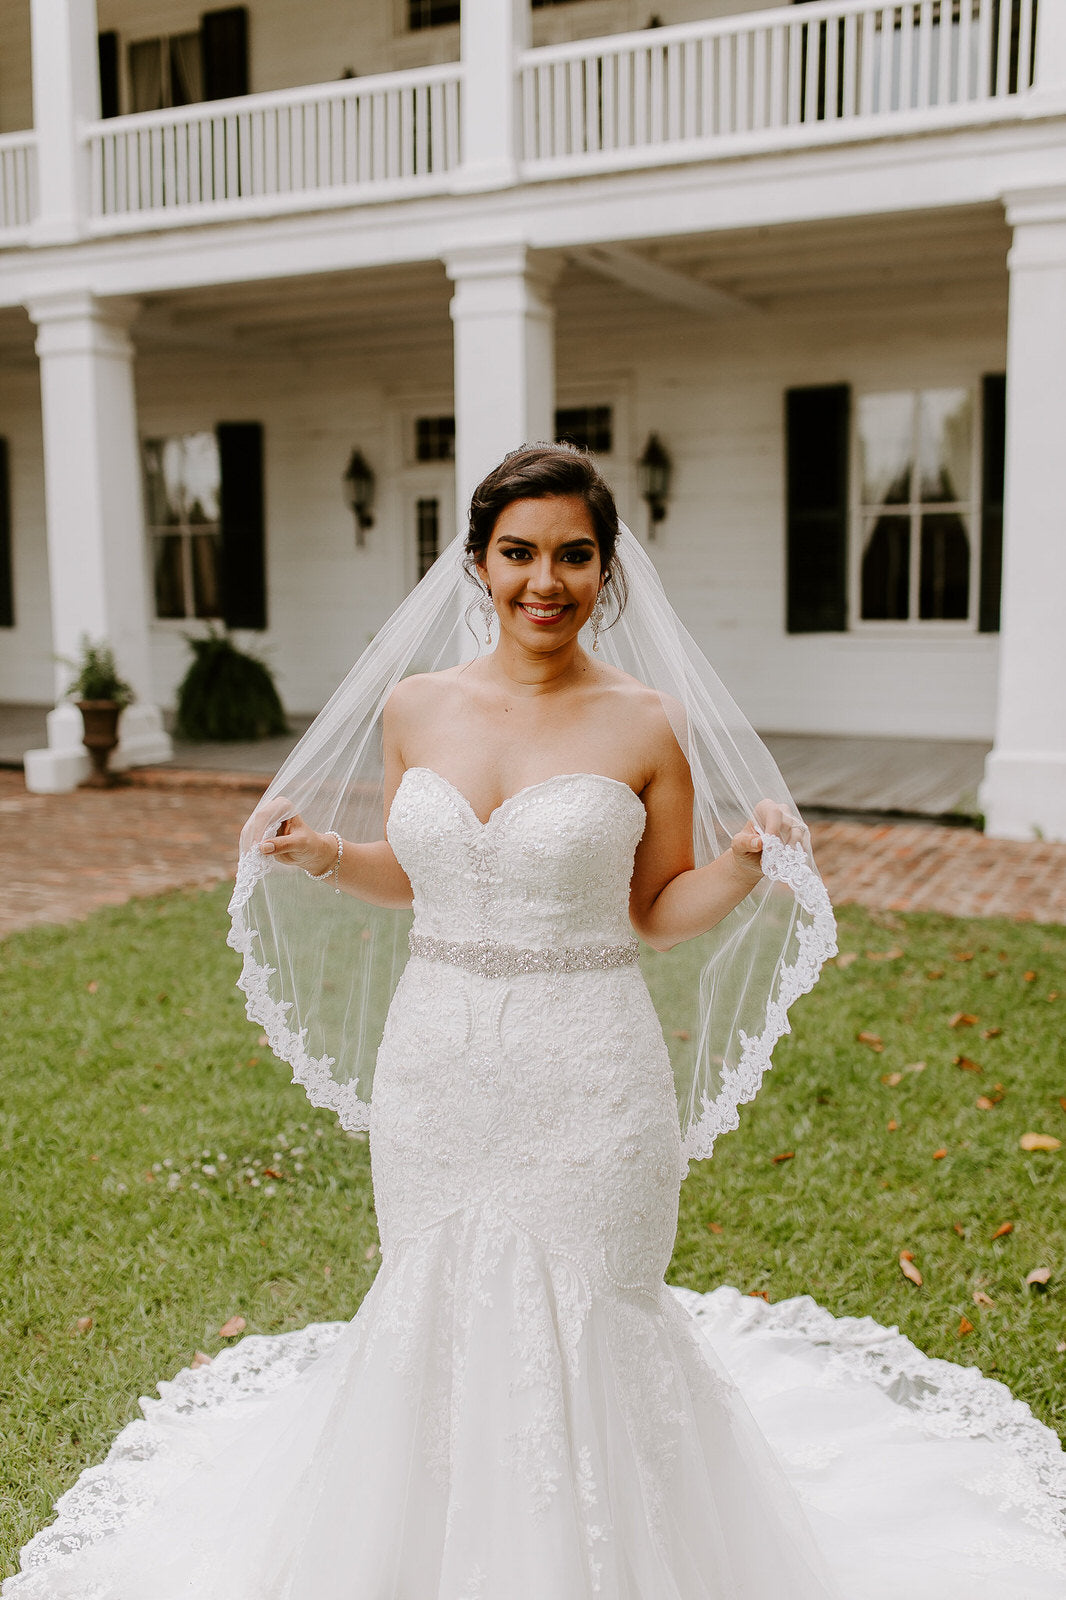 classic fingertip length wedding veil with mermaid dress